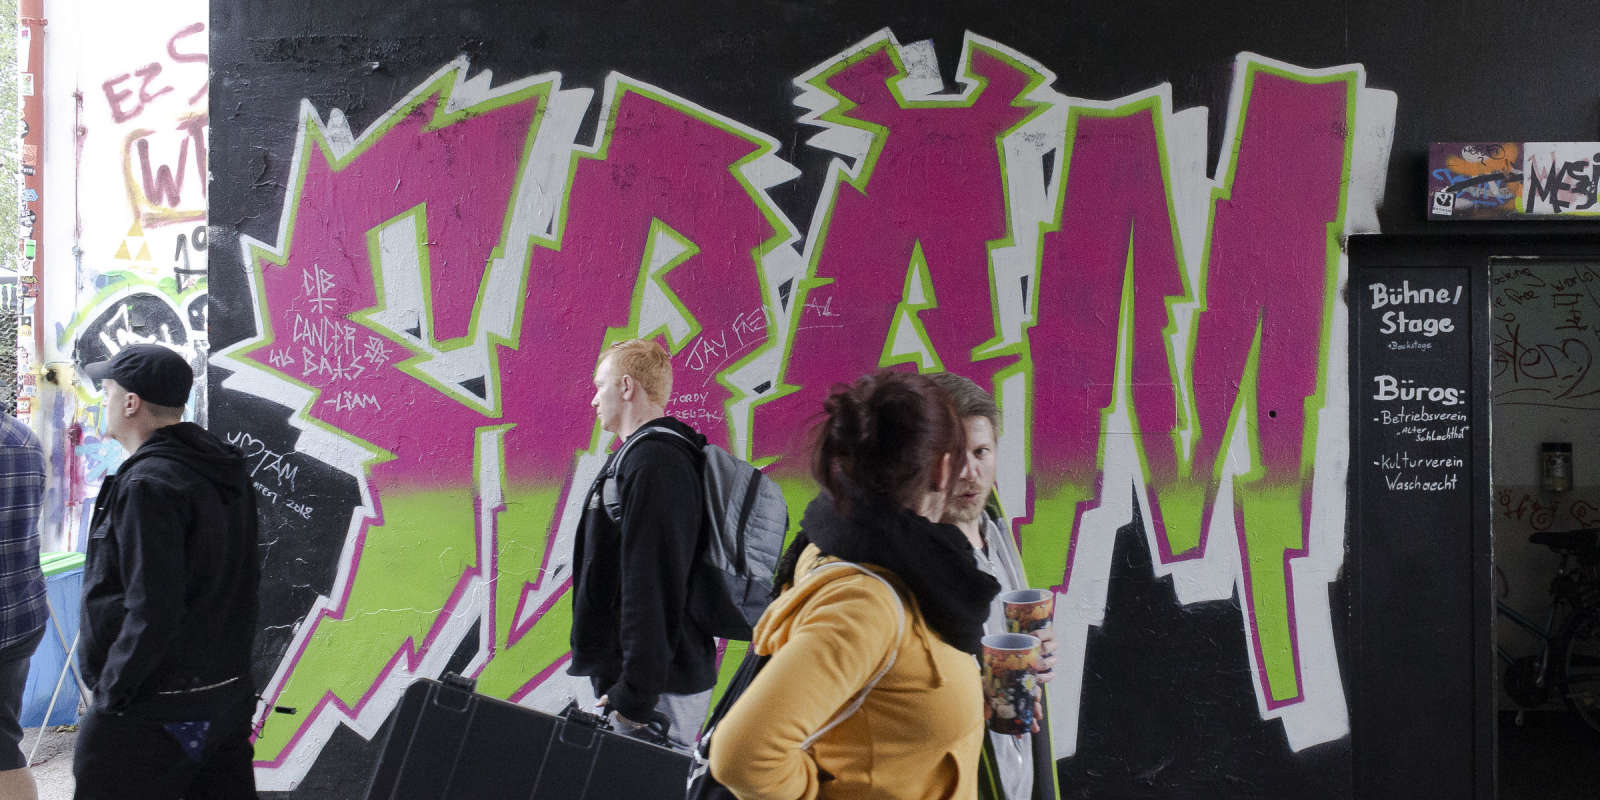 SBÄM Fest is a Punk Rock Festival in Wels, Austria. 3 Days, 2 Stages and 47 international Bands like Anti Flag, Bad Religion and many more. SBÄM (Stefan Beheim) is also graphic designer and Monster Energy Ambassador.